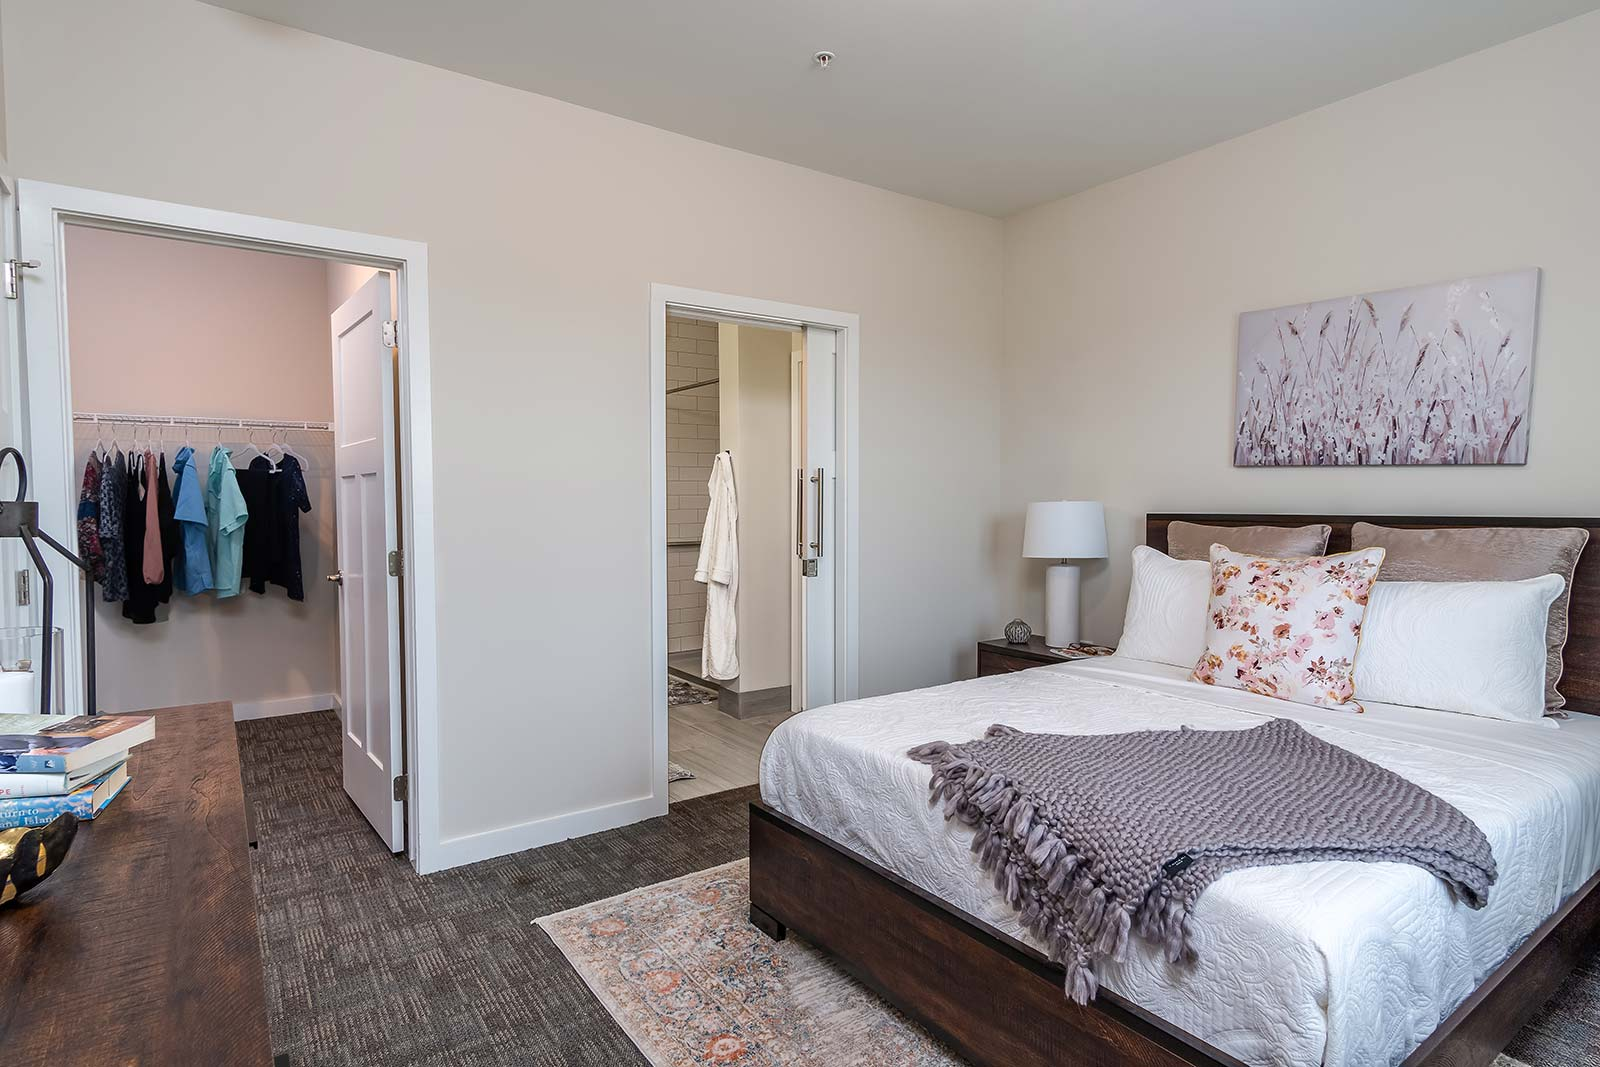 Luxurious bedroom and en-suite bathroom in our Plant City FL assisted living and memory care senior apartments